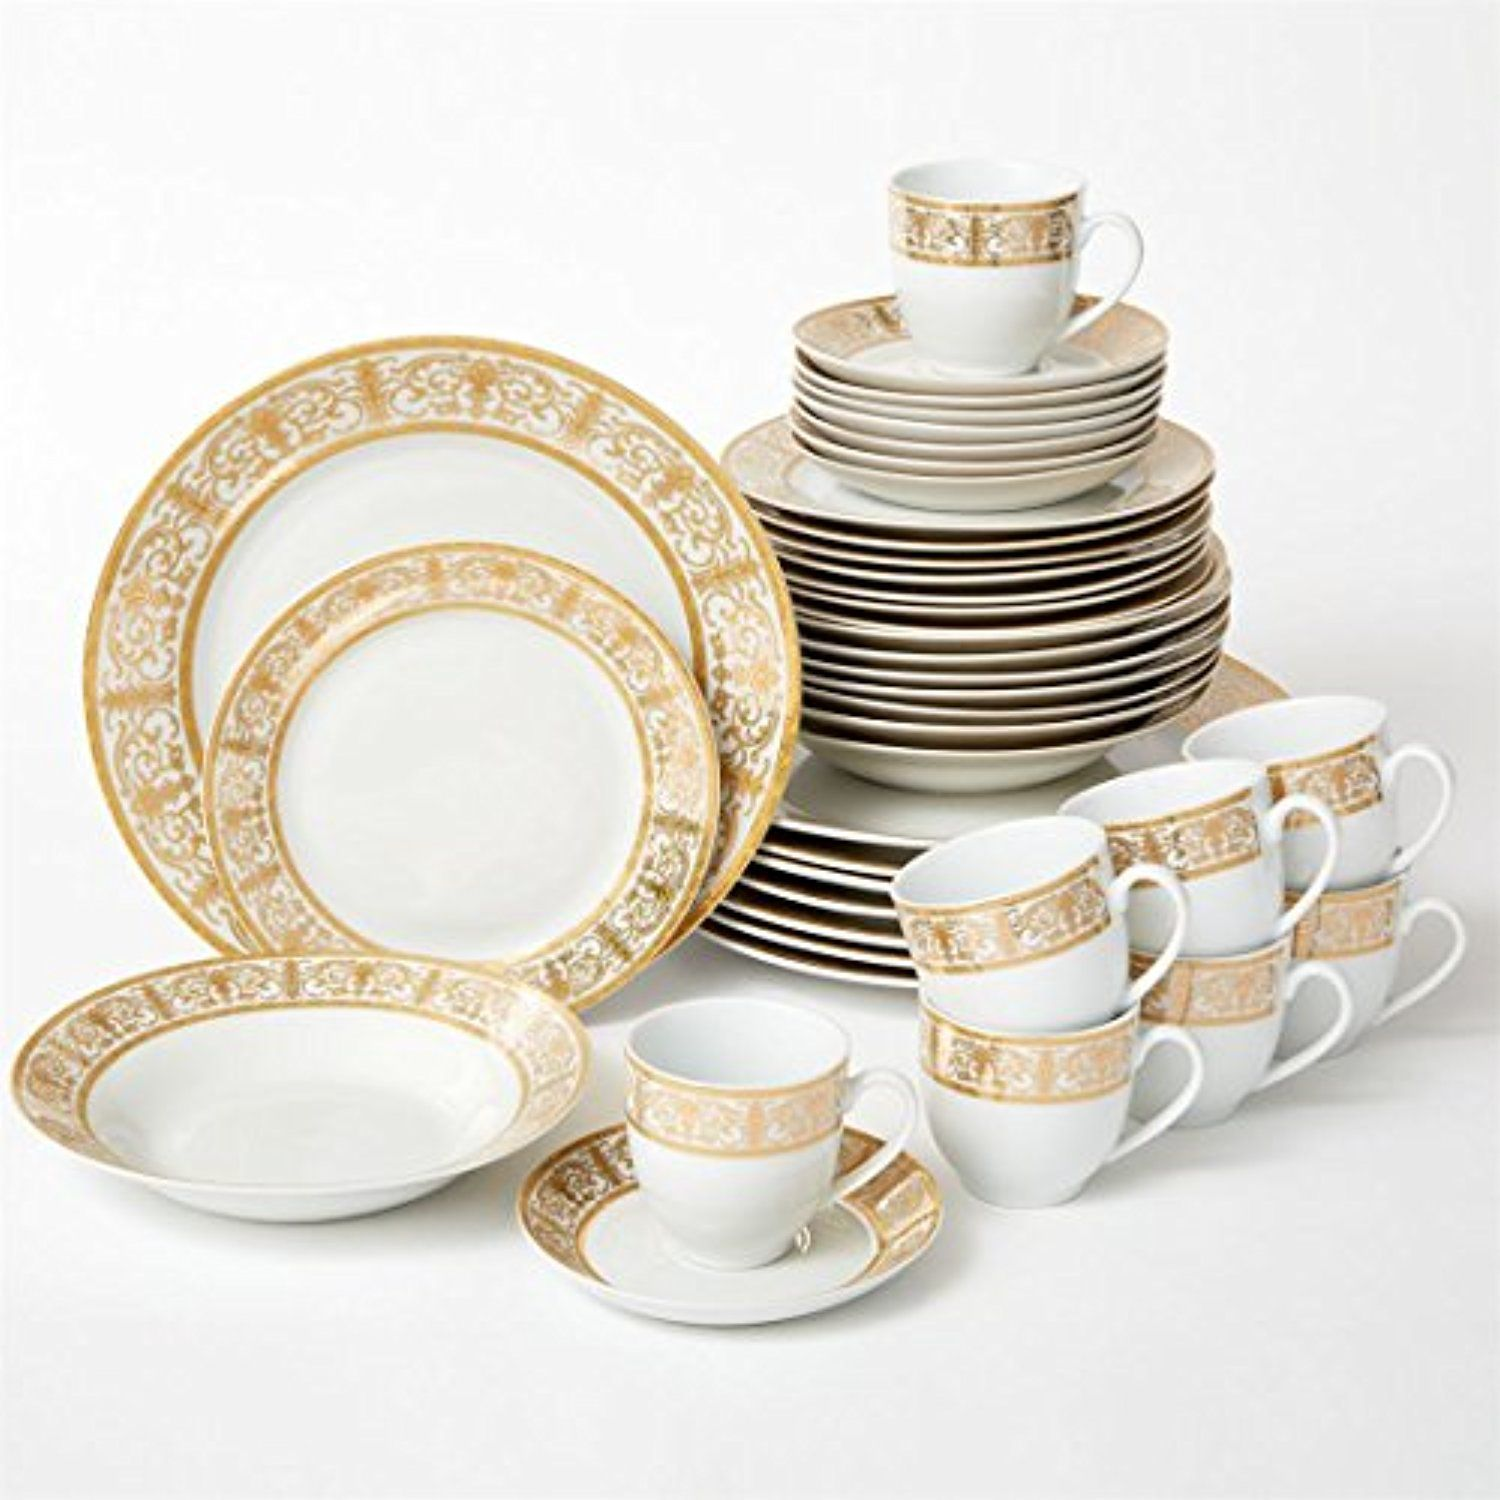 Brylanehome 40 Pc Golden Ceramic Dinnerware Set Gold White More Info Could Be Found At The Imag Ceramic Dinnerware Set Ceramic Dinnerware Dinnerware Set